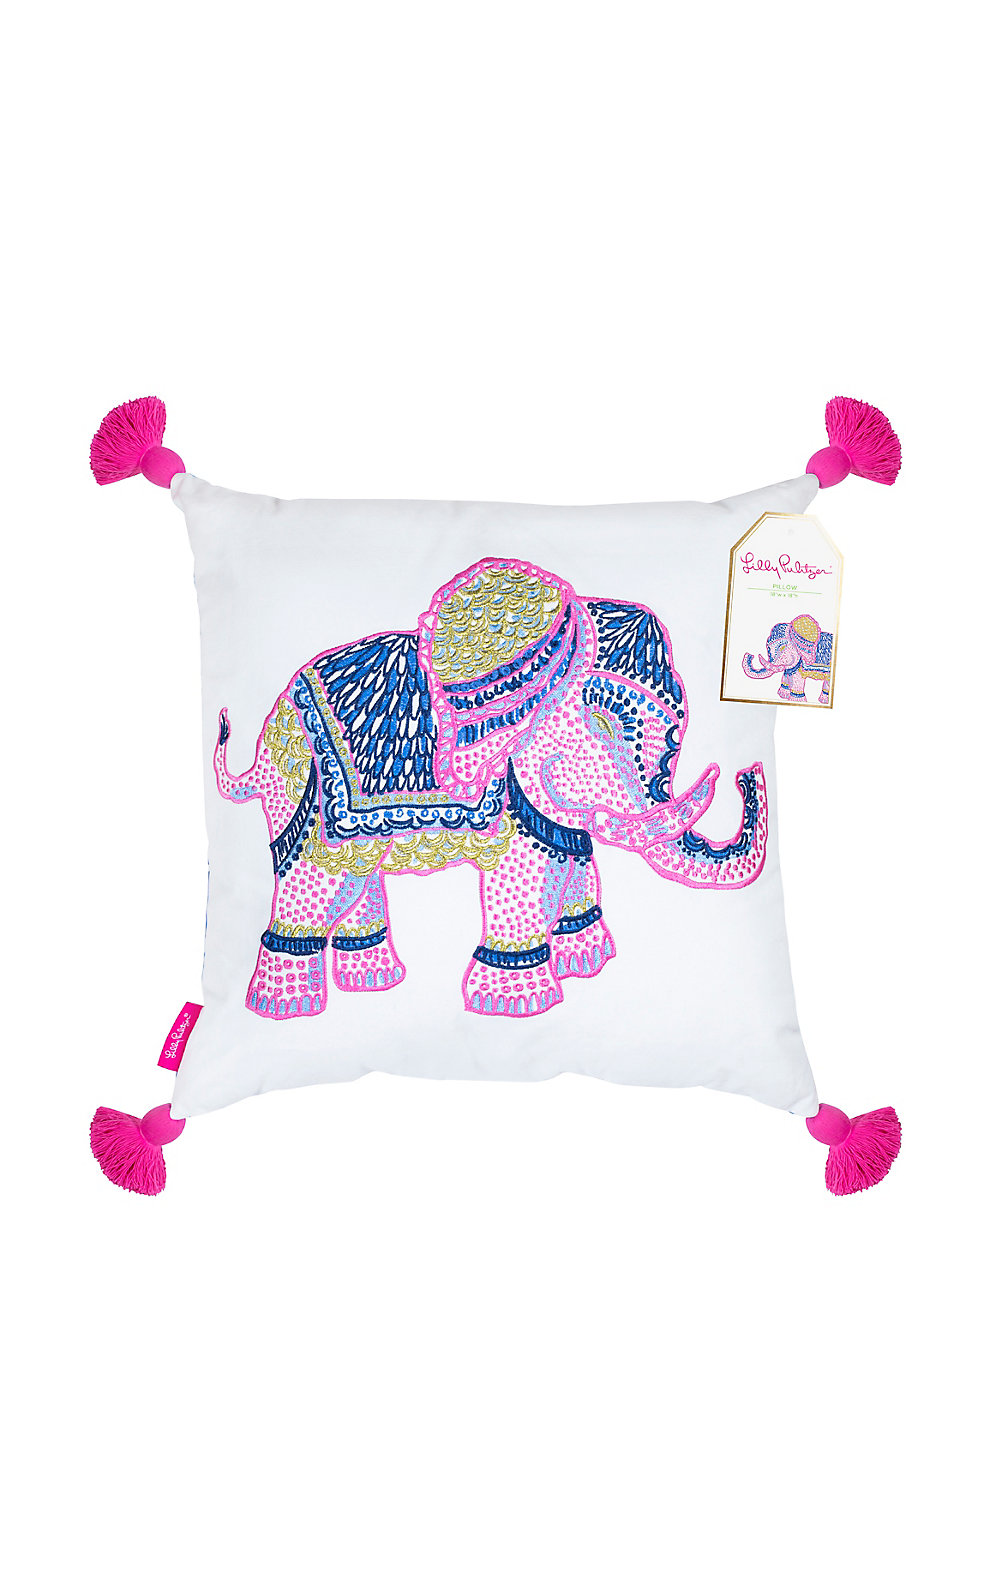 Lilly Pulitzer Pillow (large)